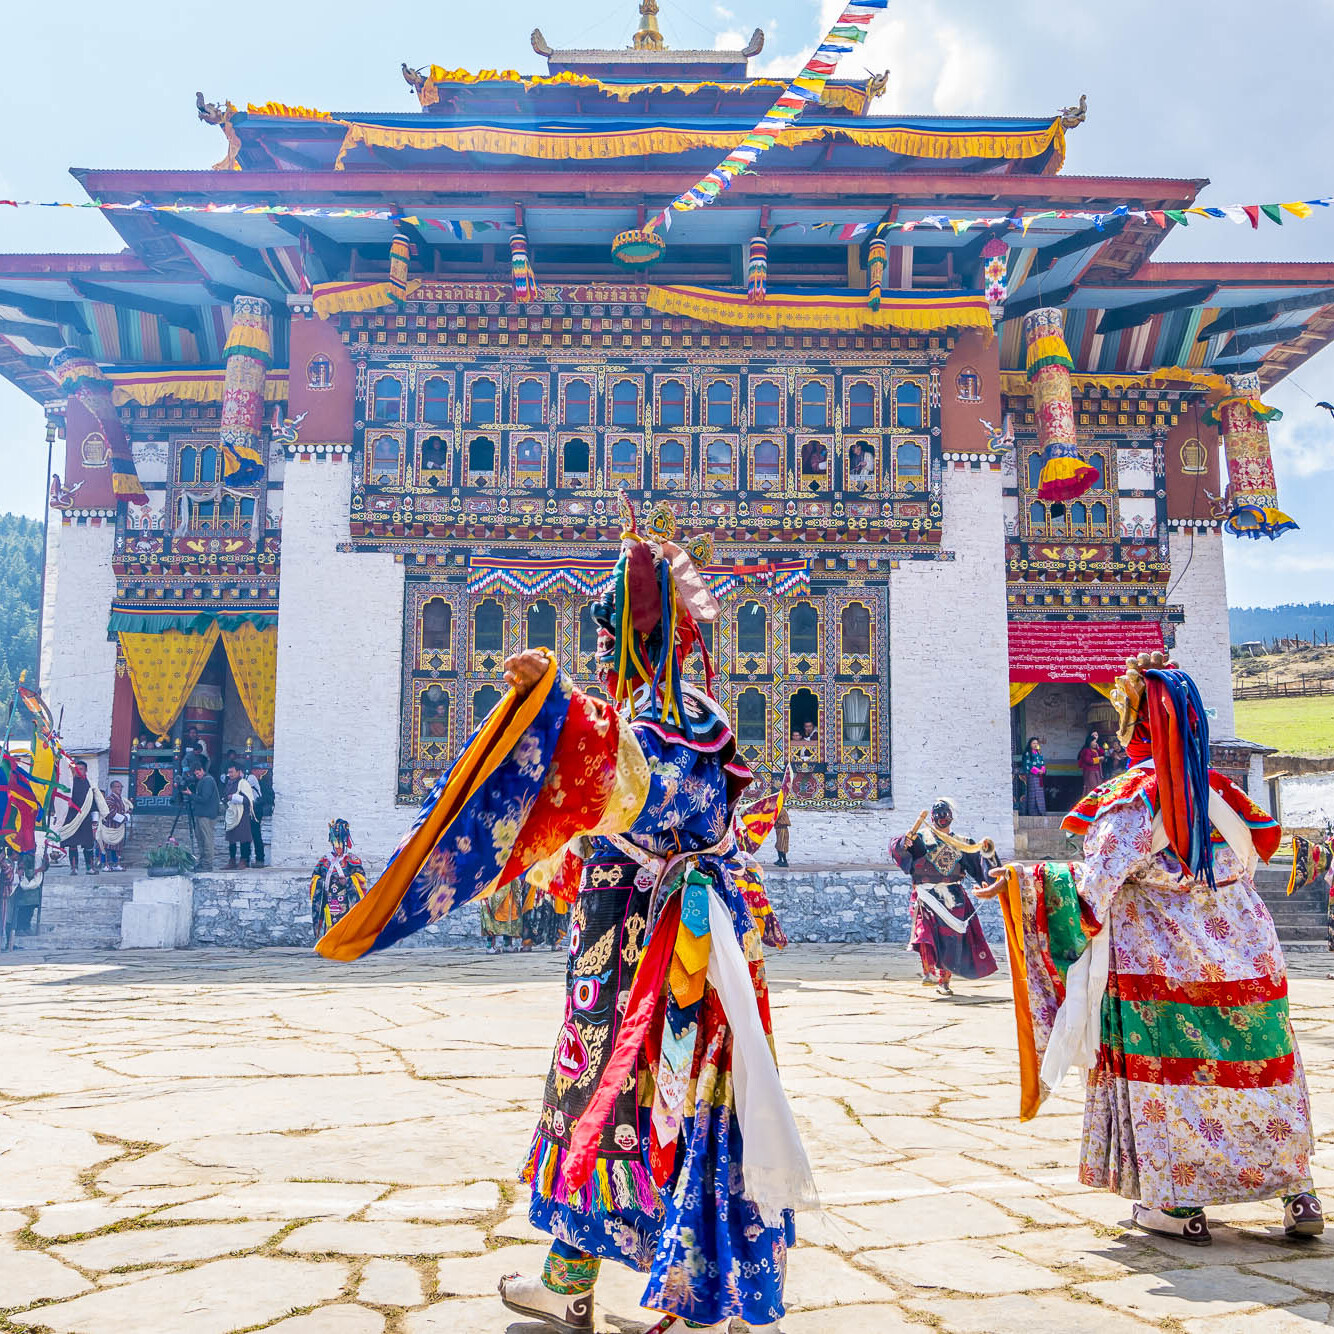 Colorful Bhutan festival with dragon masks